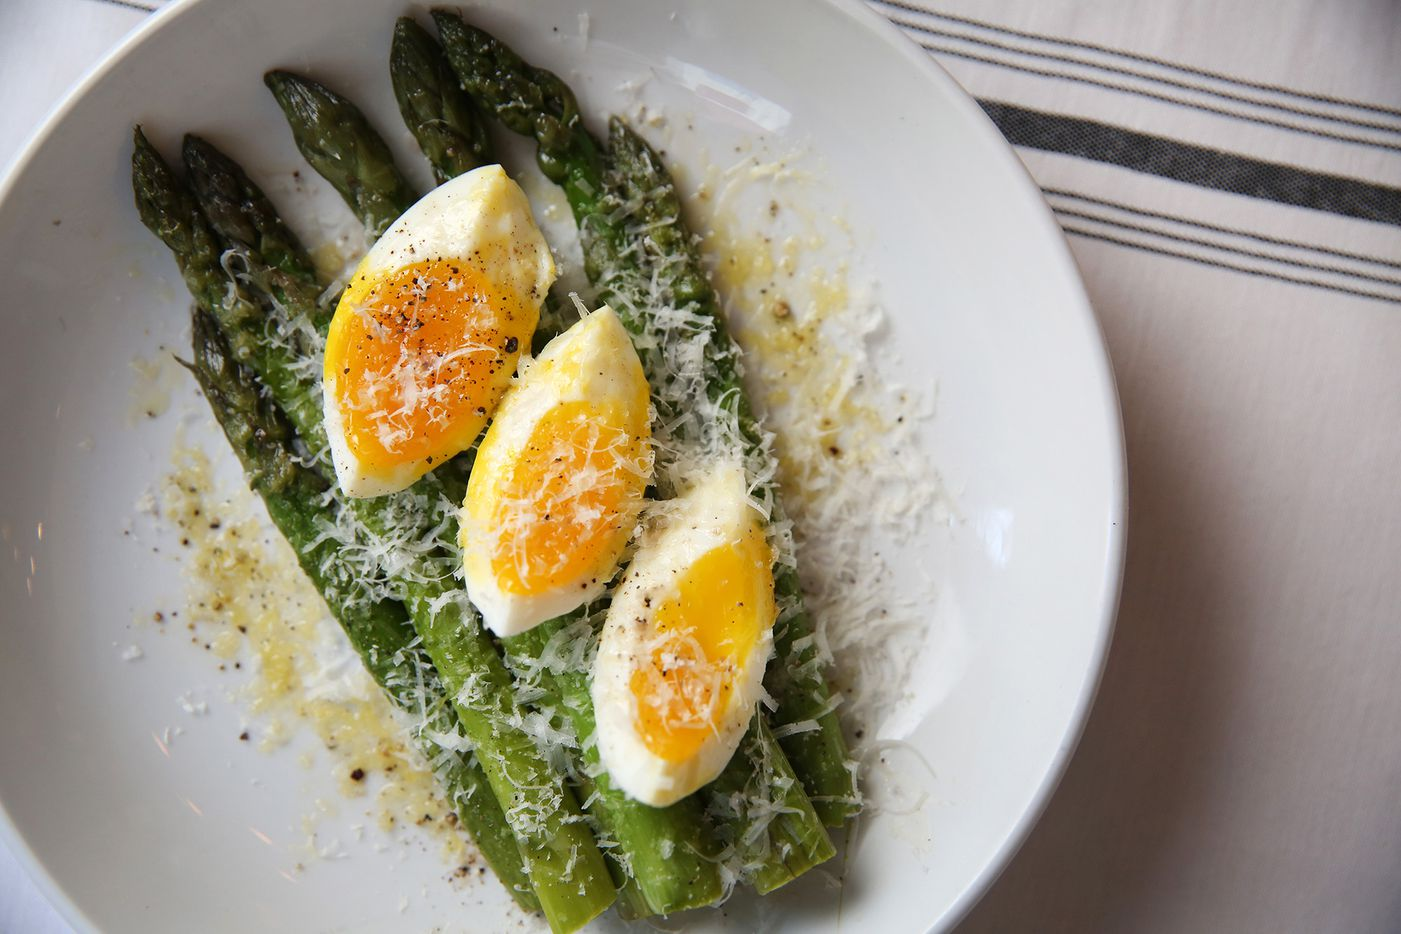 Asparagus milanese, shown May 17, is a featured dish at Piattello Italian Kitchen in Fort Worth.